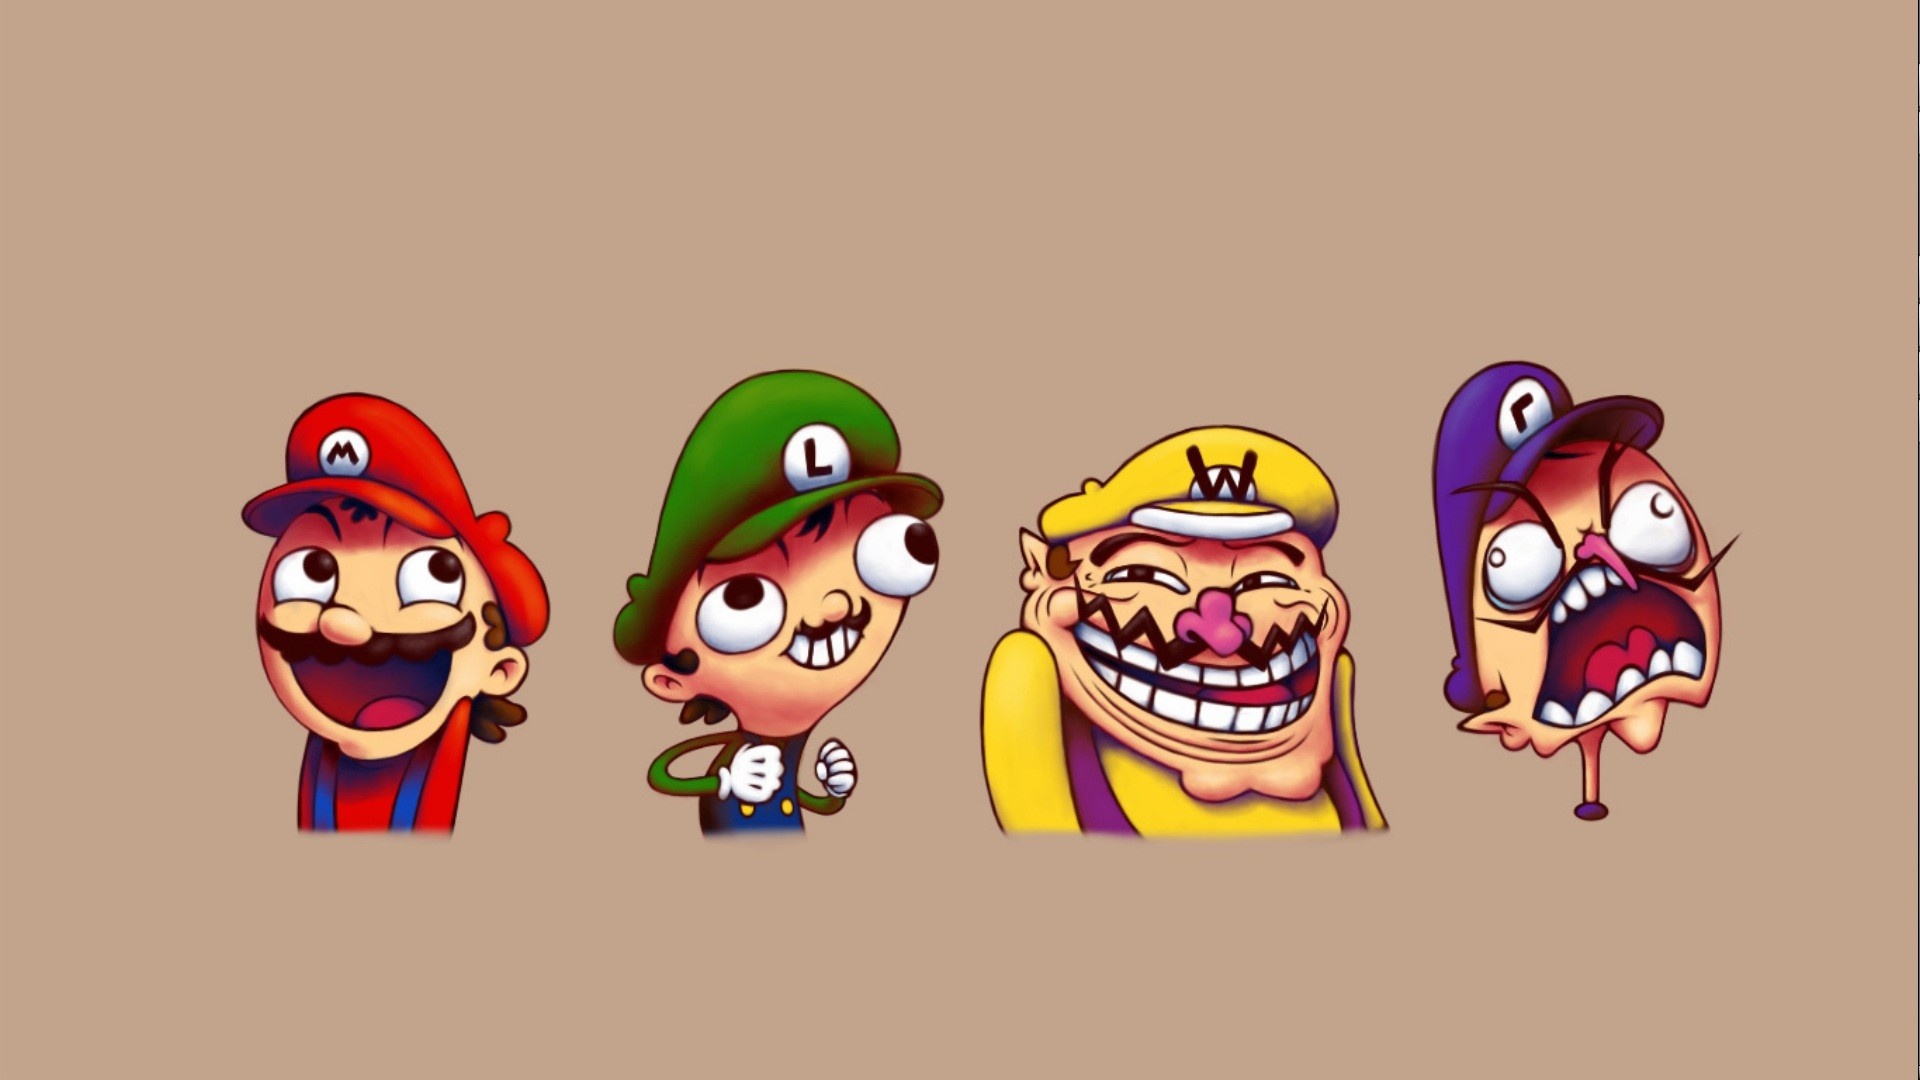 Meme Faces Super Mario Exclusive HD Wallpapers 5003 1920x1080